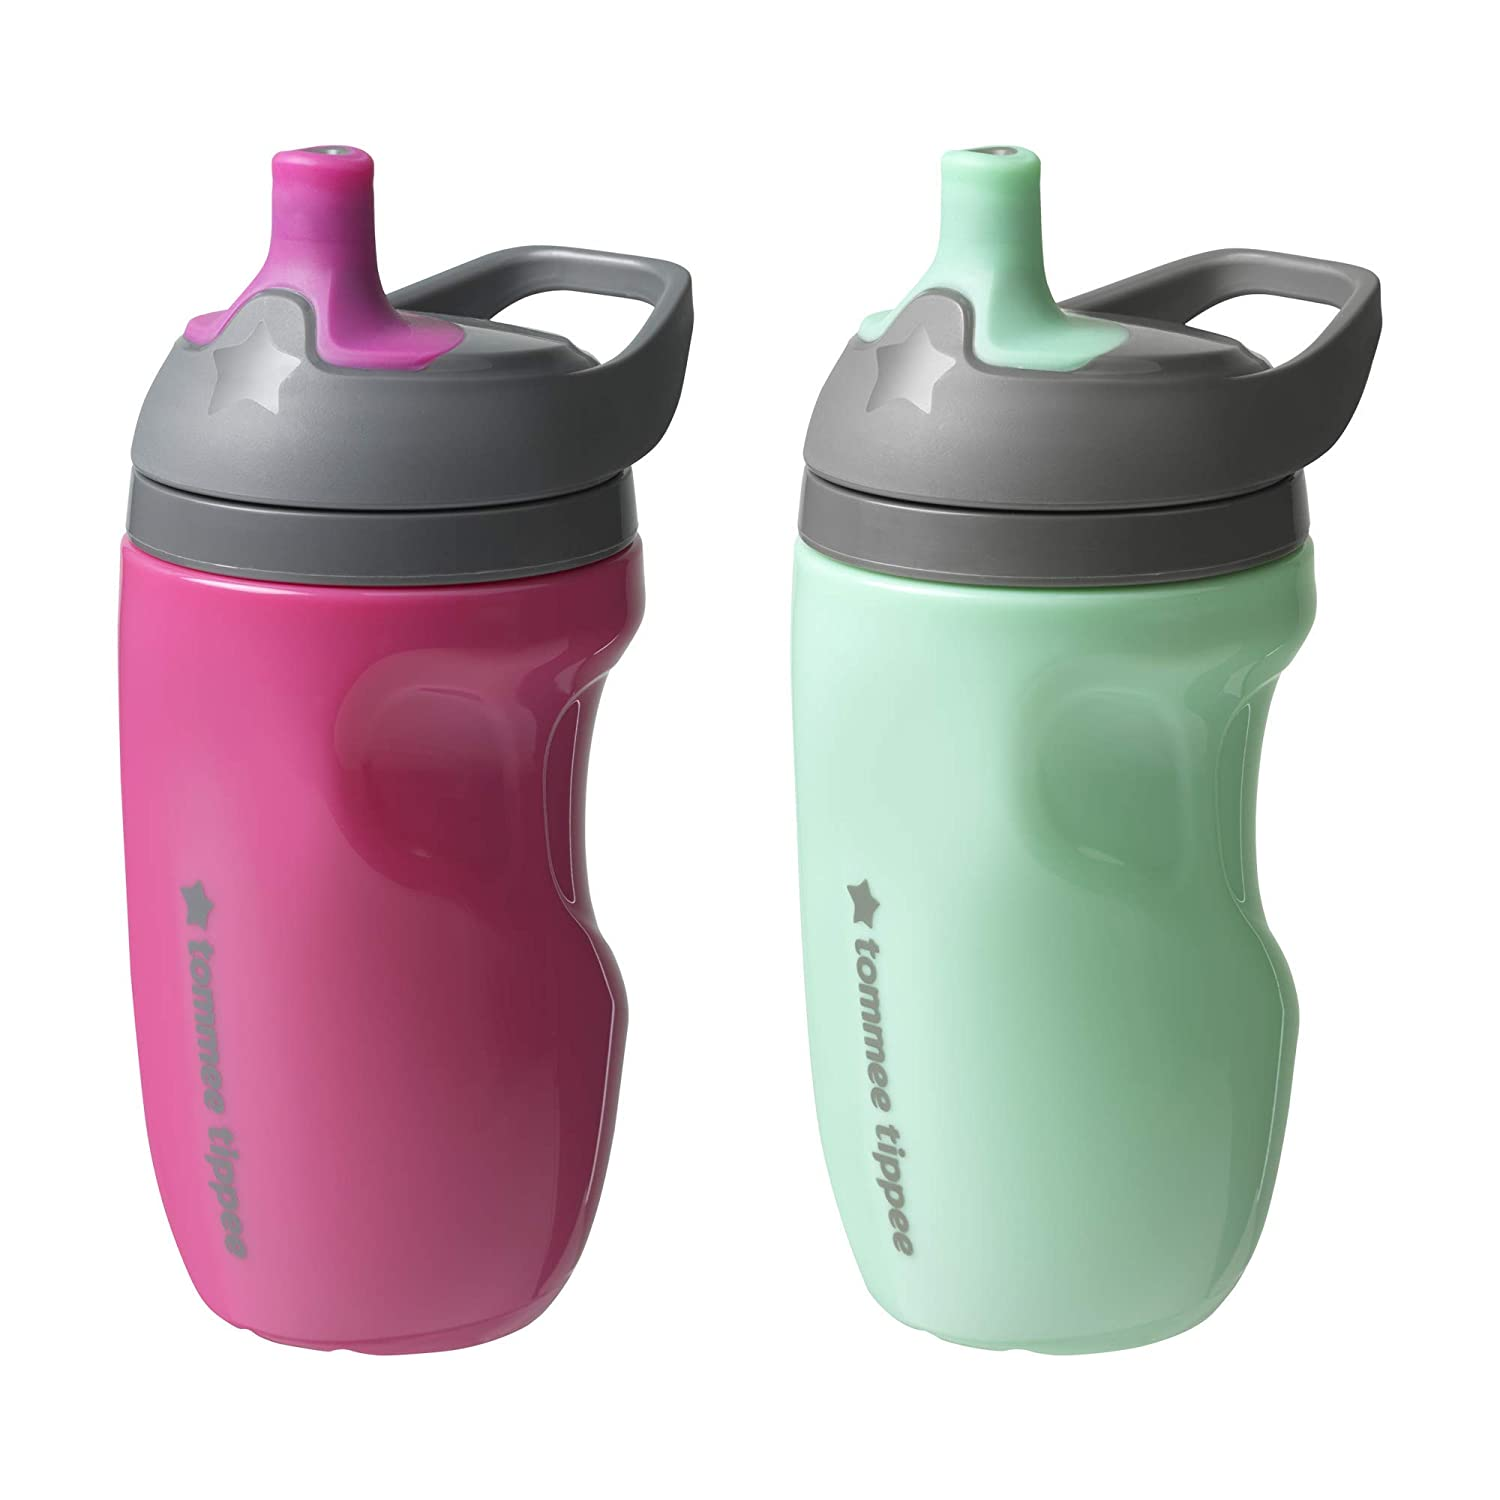 Tommee Tippee Insulated Sportee Toddler Water Bottle with Handle, Girl - 12M+, 2ct : Baby